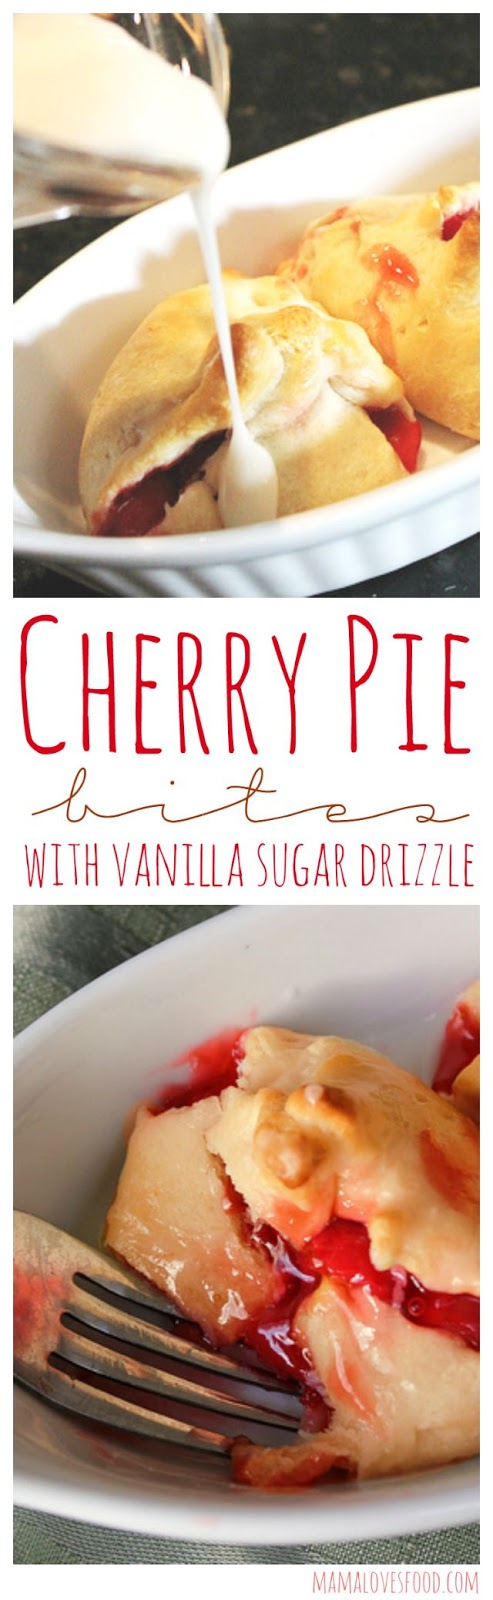 Mama Loves Food!: Cherry Pie Bites with Vanilla Sugar Drizzle.